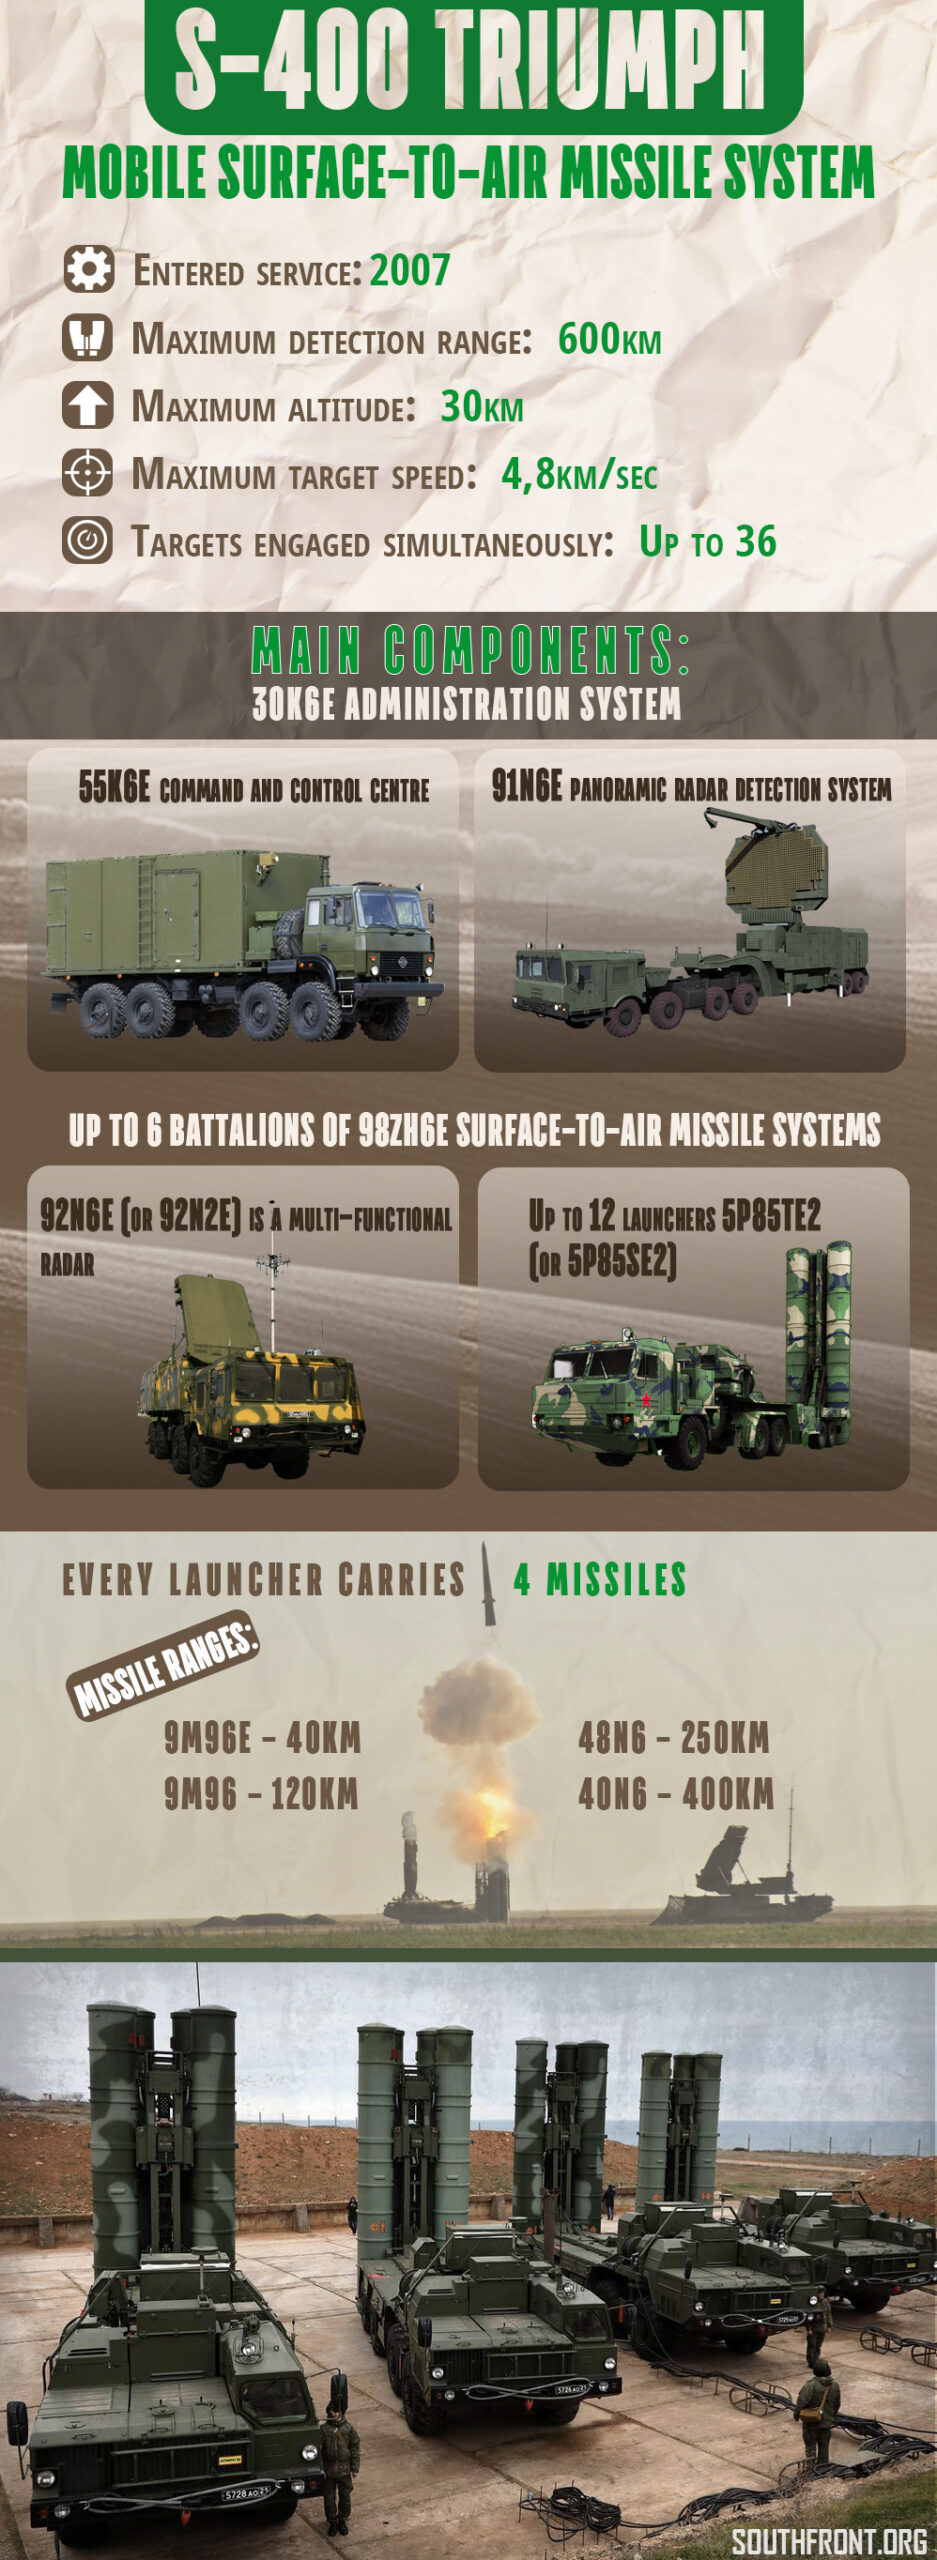 Saudi Arabia Is Eyeing Russia's S-400 As Replacement For US THAAD & Patriot Systems – Report